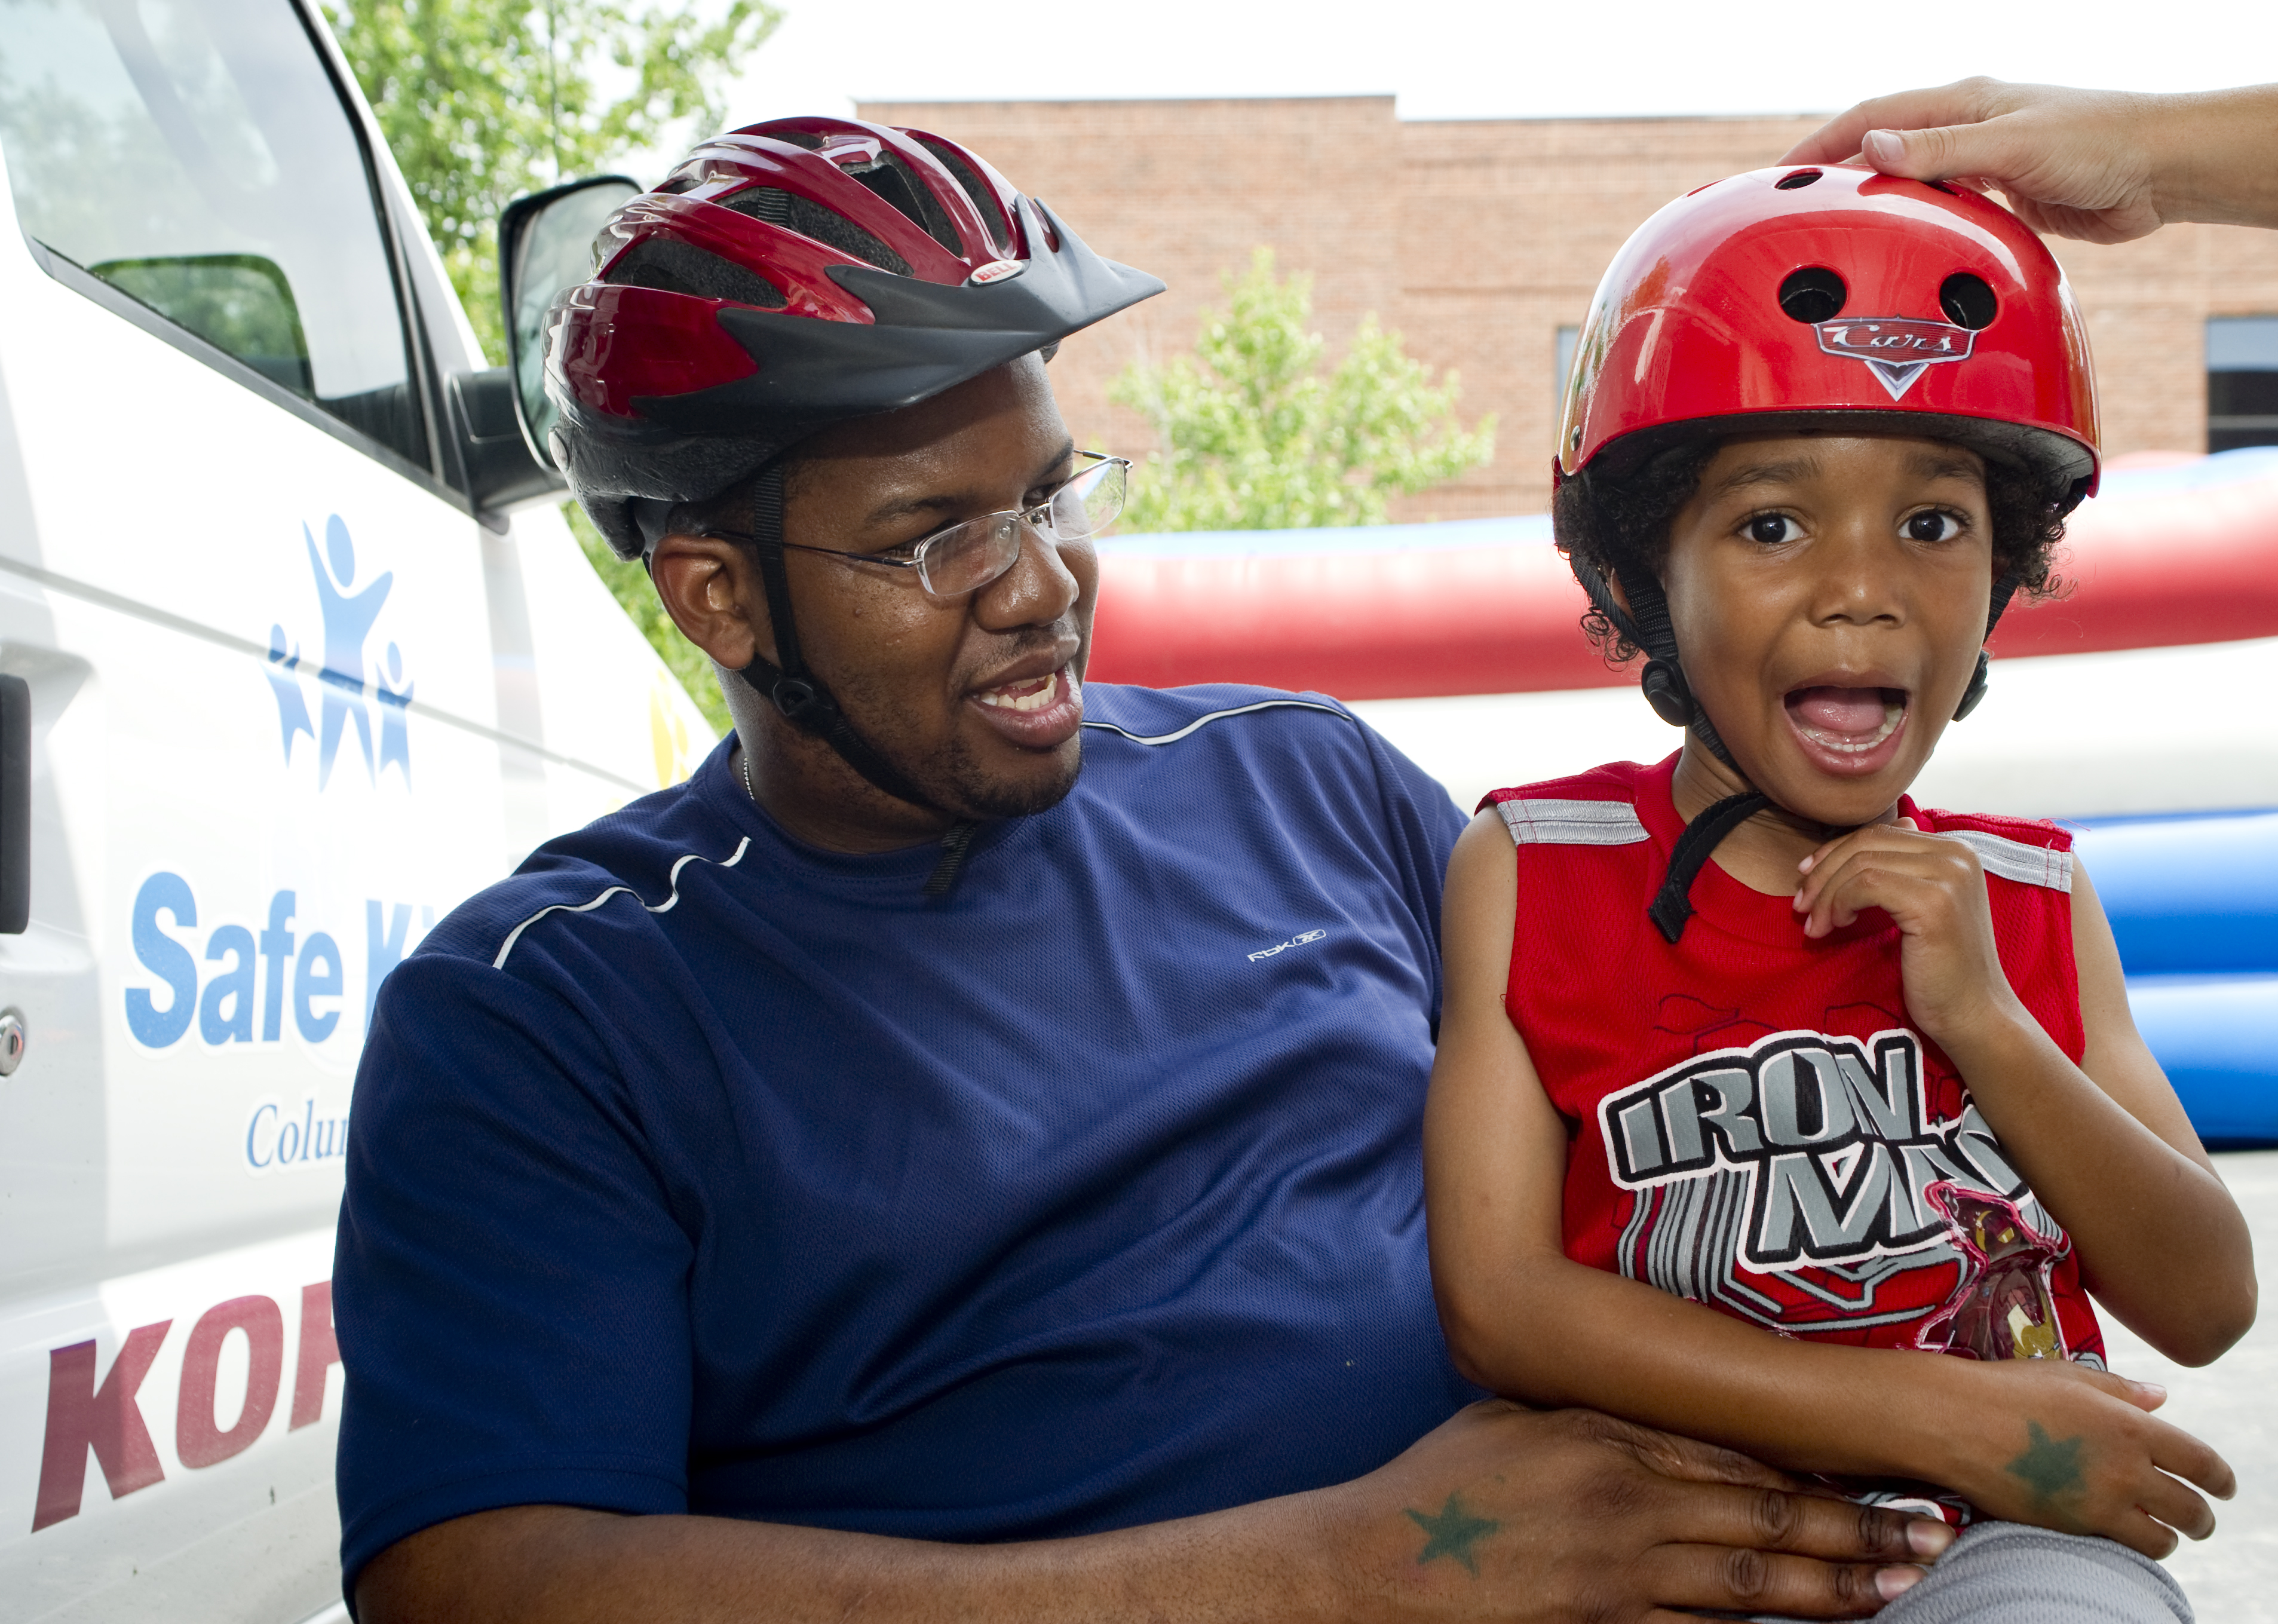 safe kids day parent and child with helmets